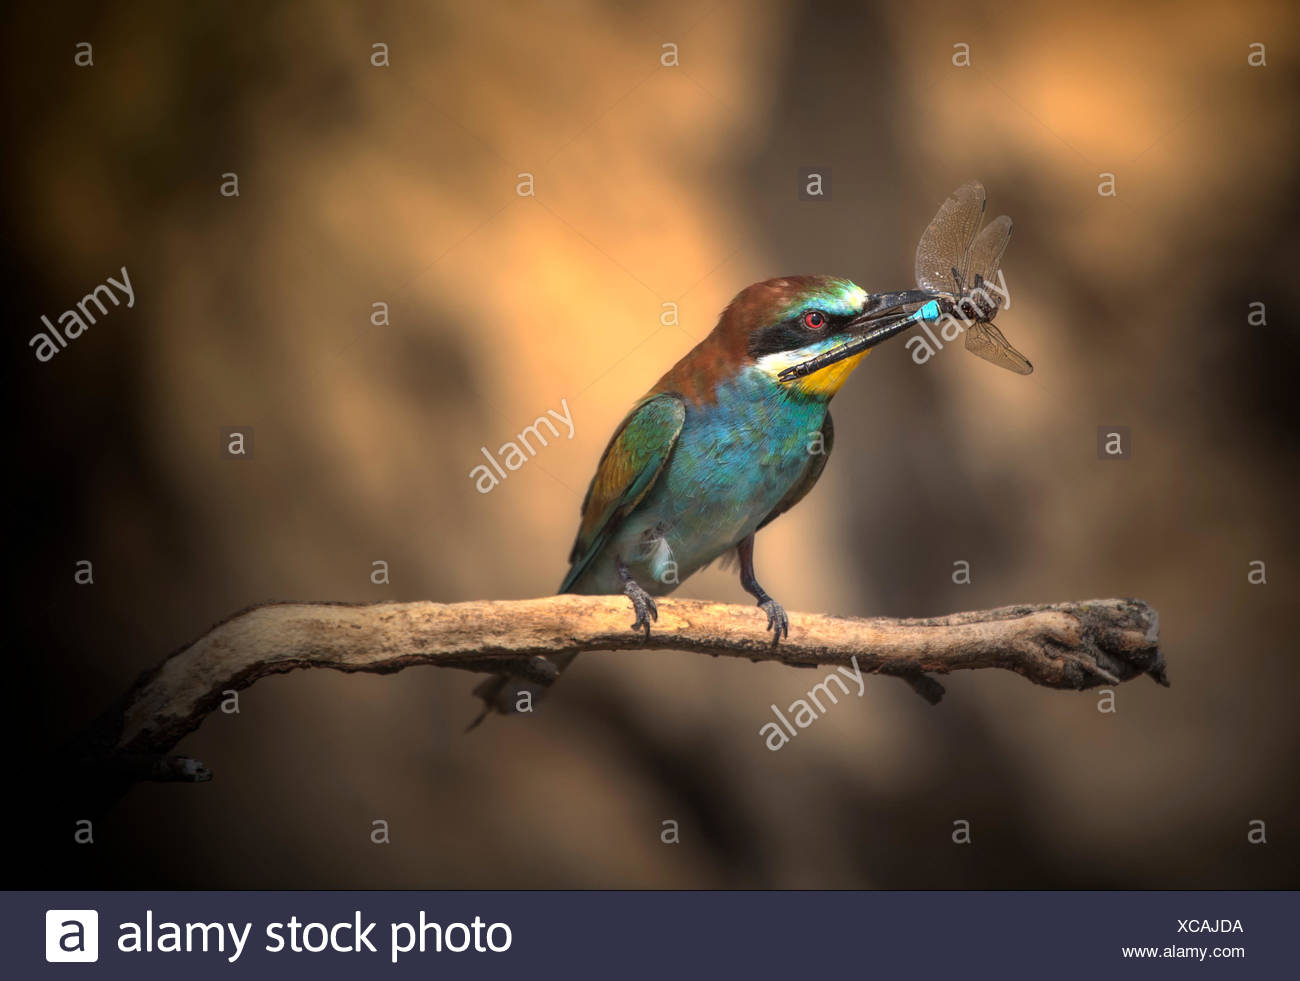 Spain, Navarra, Comunidad Foral de Navarra, Bee-eater perching on branch and holding insect - Stock Image